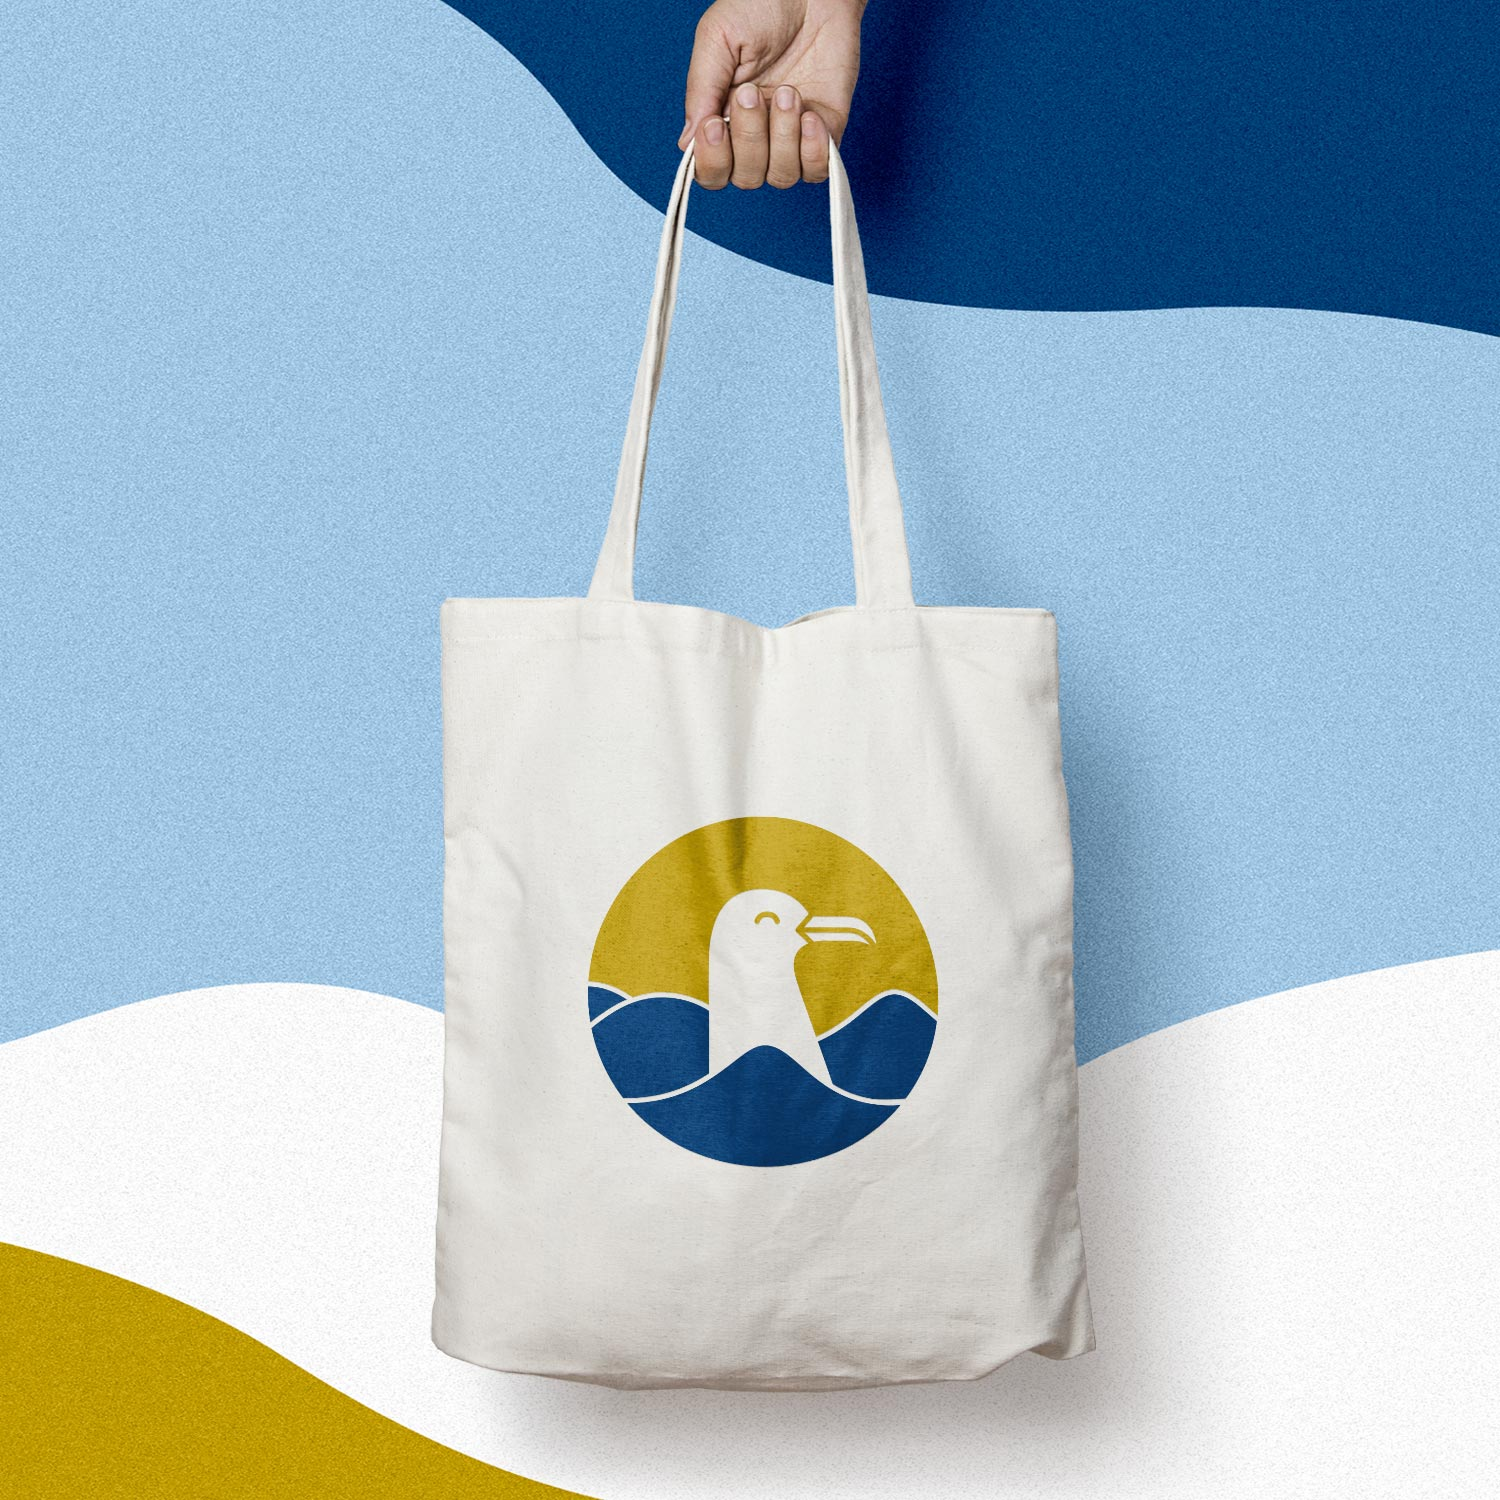 impression sur tote bag